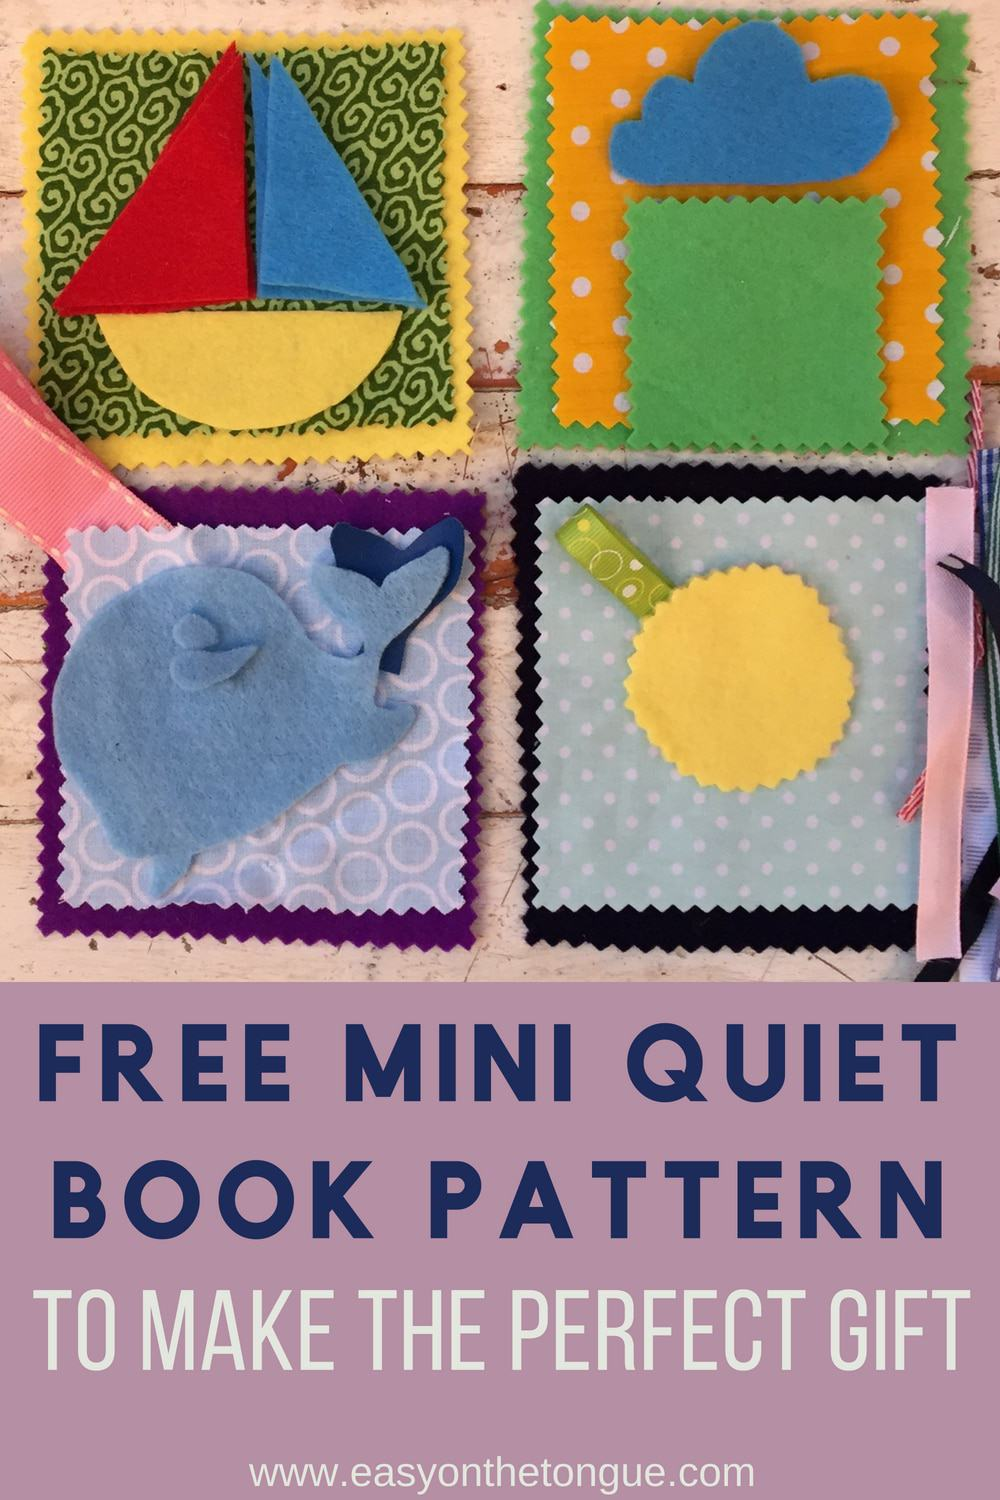 free mini quiet book pattern for you to make the perfect gift